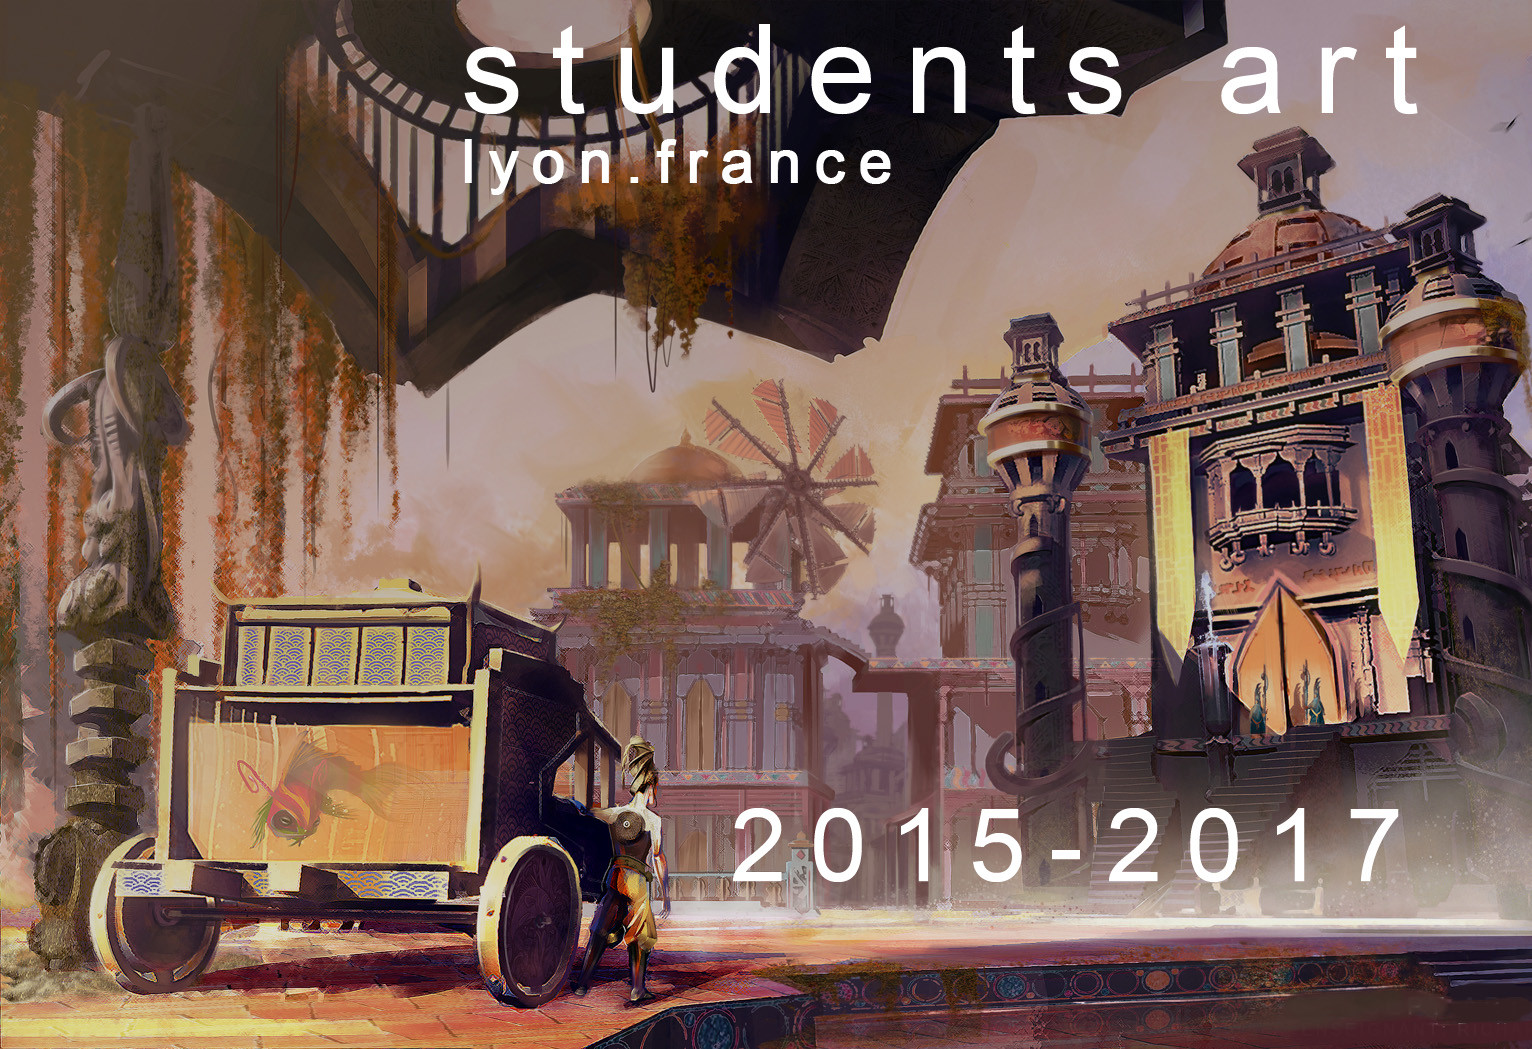 Students art (Lyon.France) 2015-2017